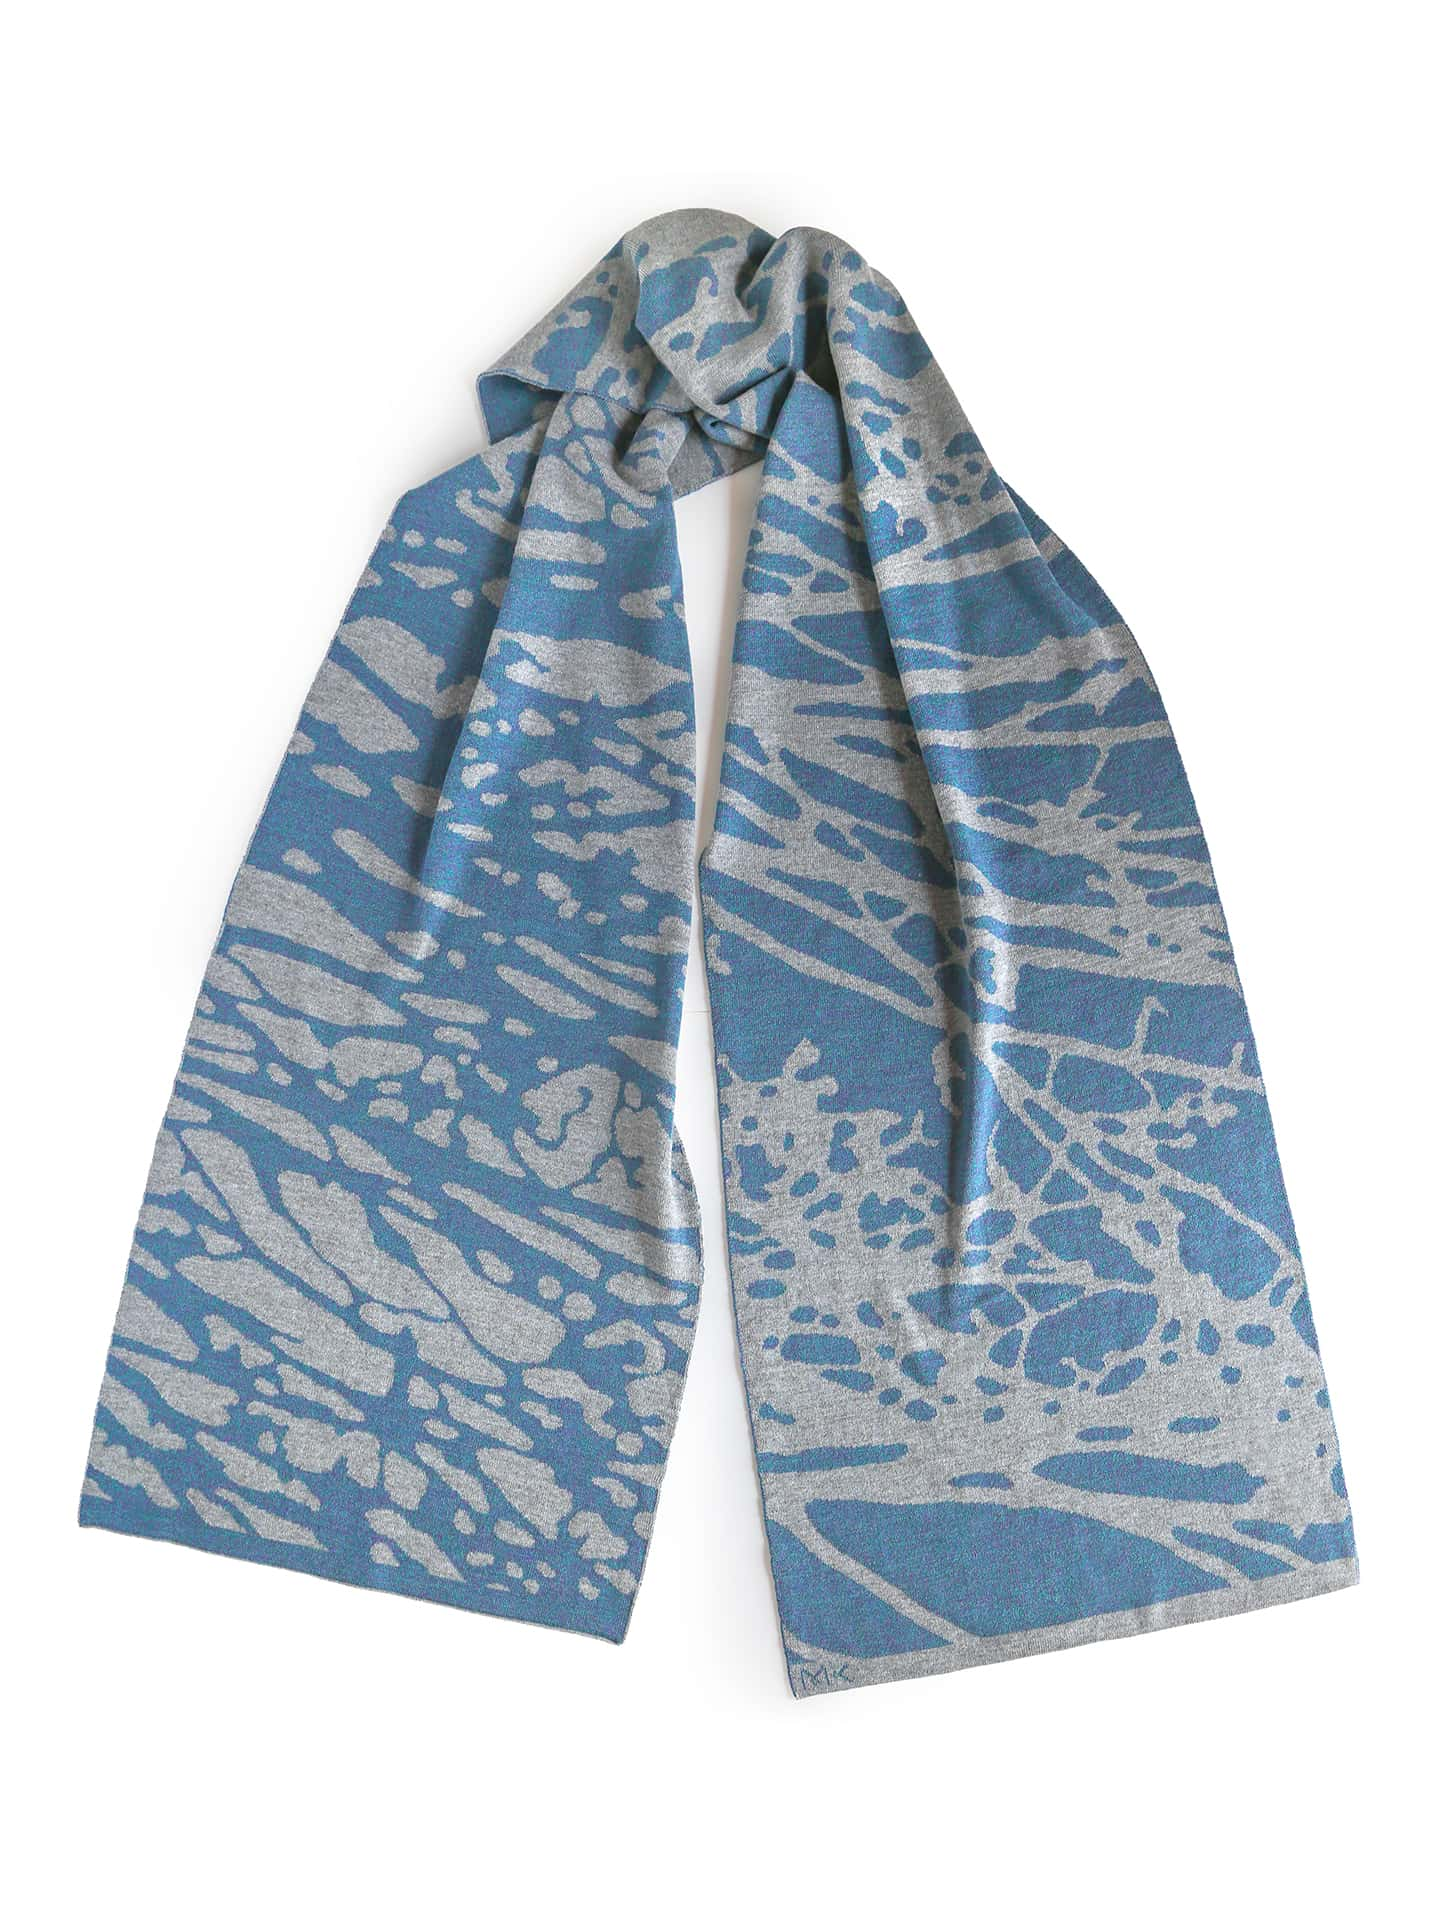 Painted Tree Scarf - Light Grey & Teal Mouline